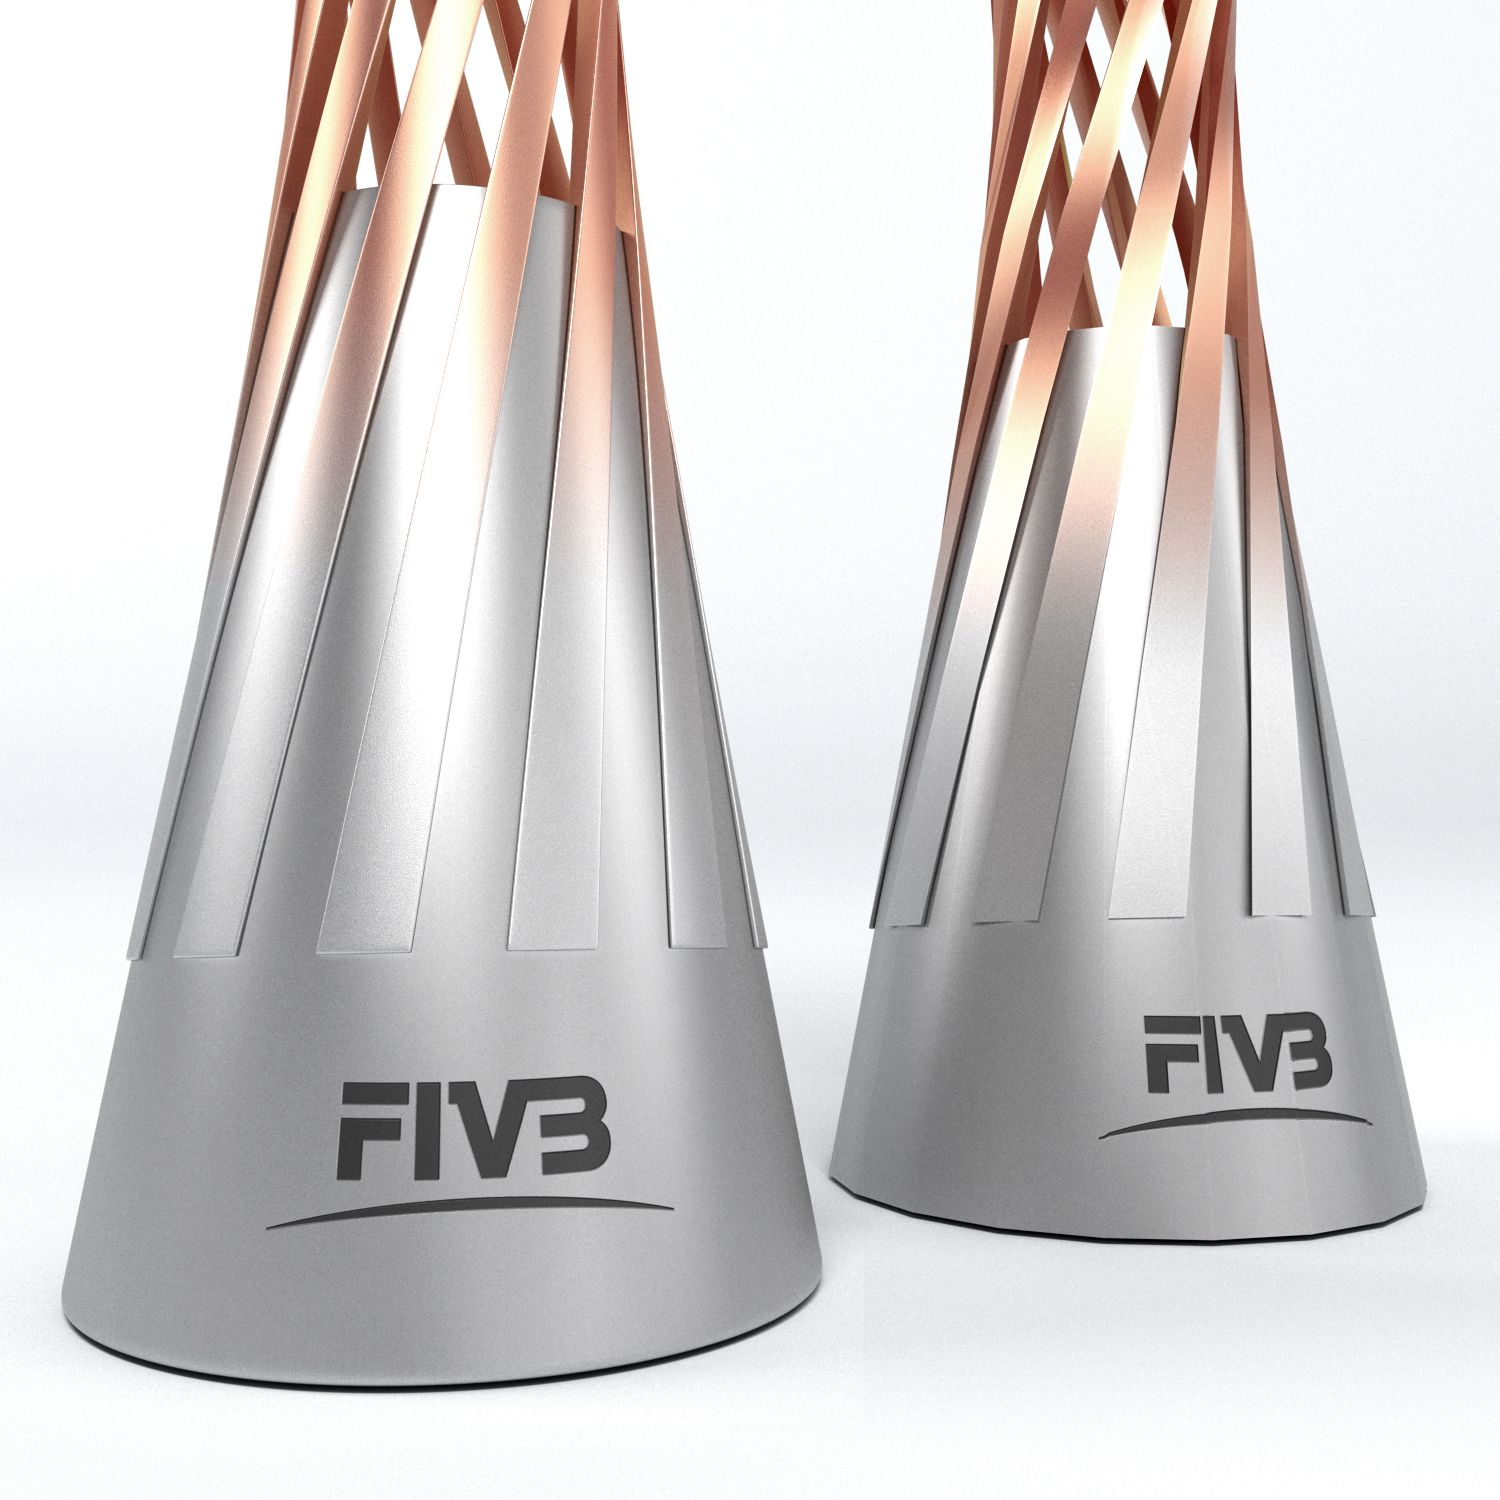 Volleyball World Championship Women Cup Trophy Low Poly Championship World Volleyball Women Trophy Design Trophy Low Poly